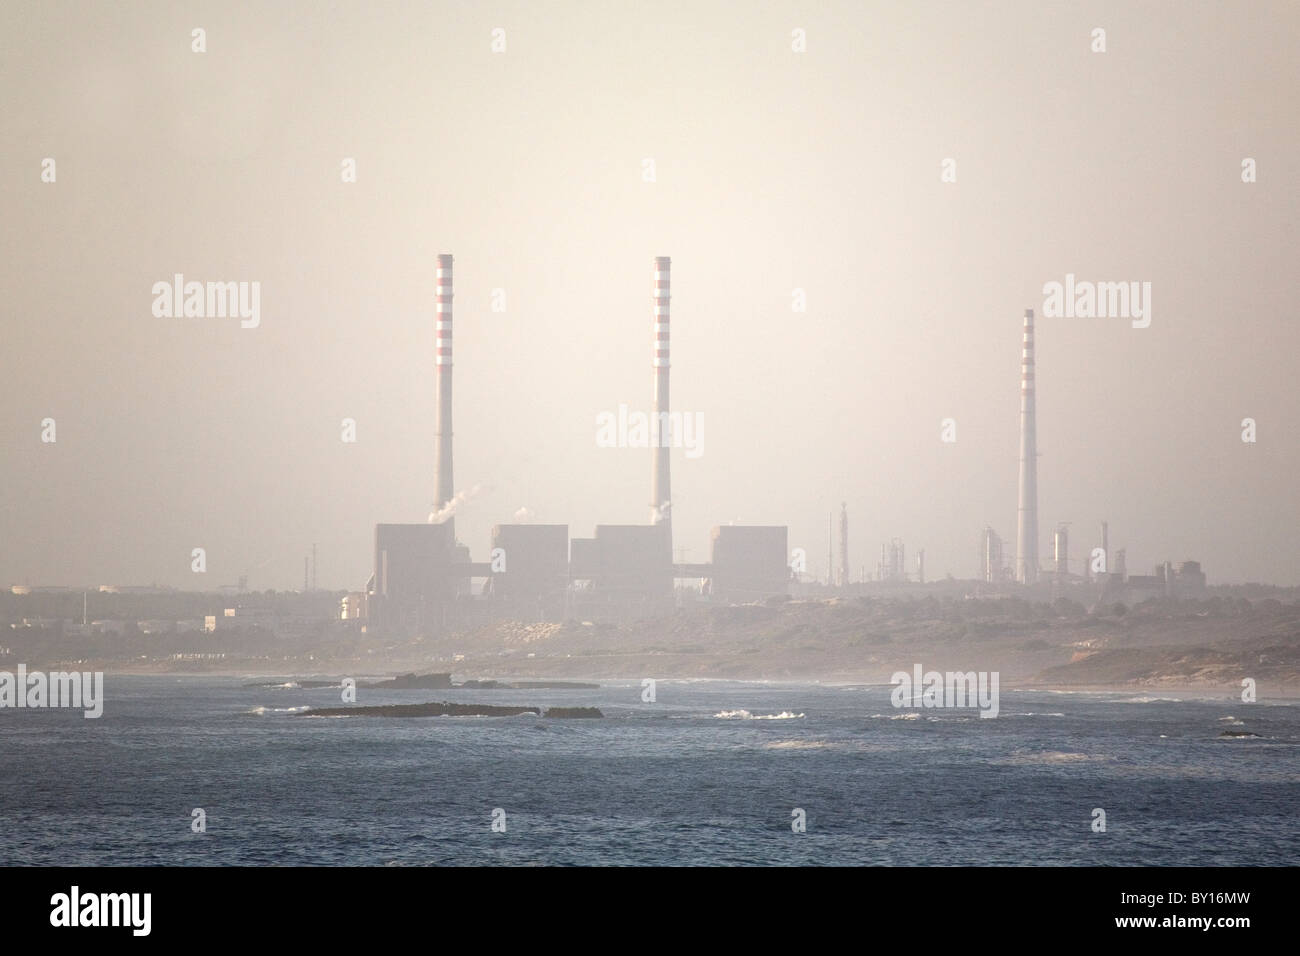 The chimneys of industrial plants at Sines on Portugal's Alentejo coast. - Stock Image